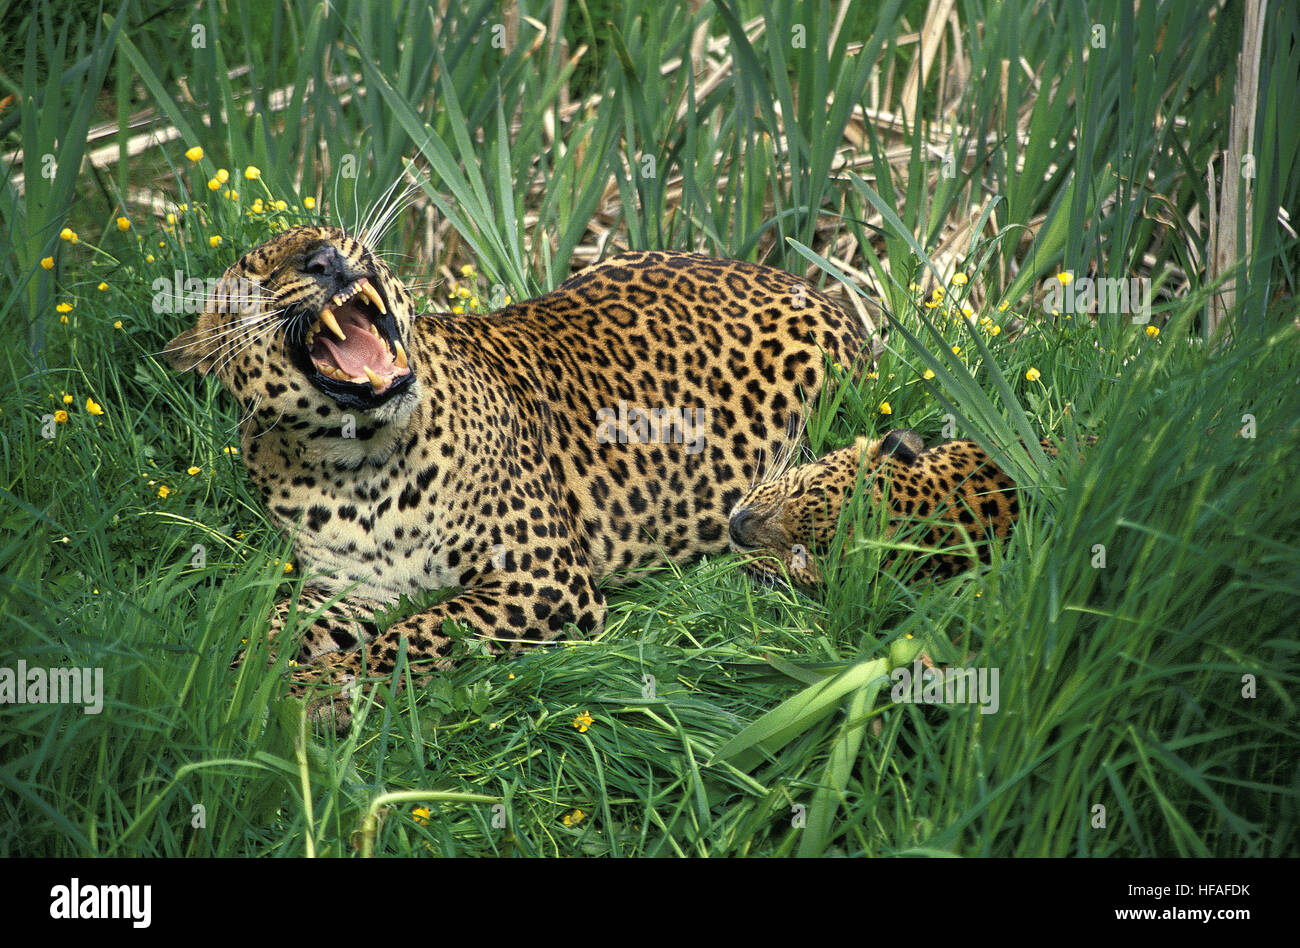 Leopard, panthera pardus, Adult snarling - Stock Image